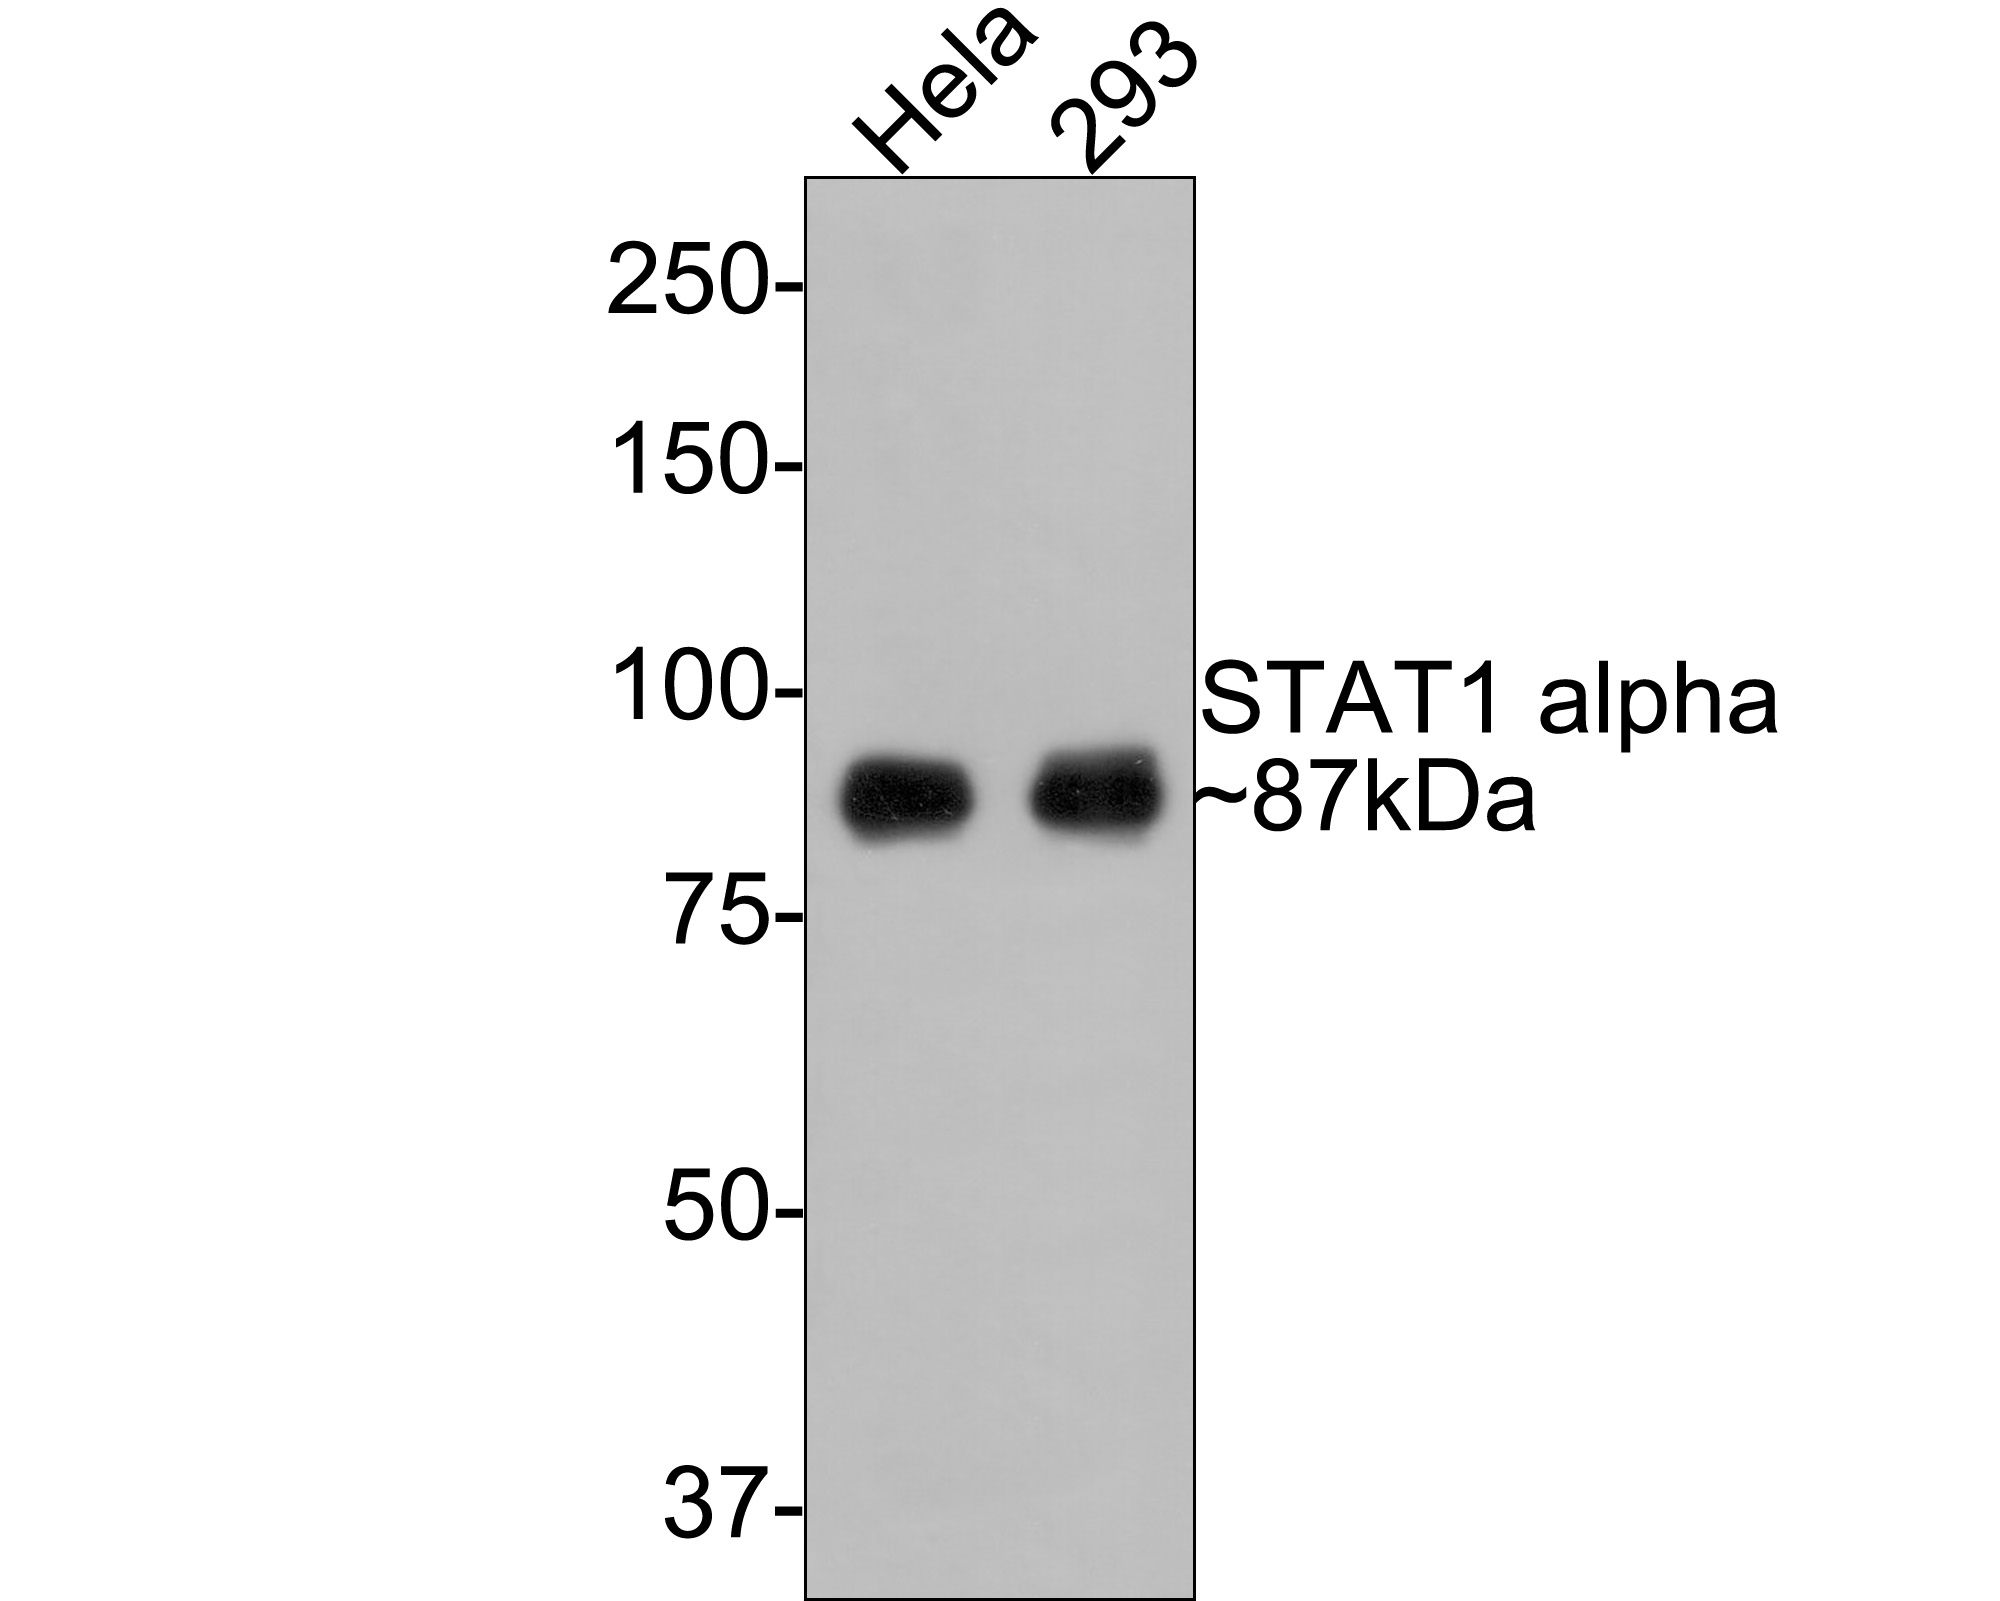 Western blot analysis of STAT1 on different lysates using anti-STAT1 alpha antibody at 1/1,000 dilution.<br /> Positive control: <br /> Lane 1: Hela <br /> Lane 2: 293